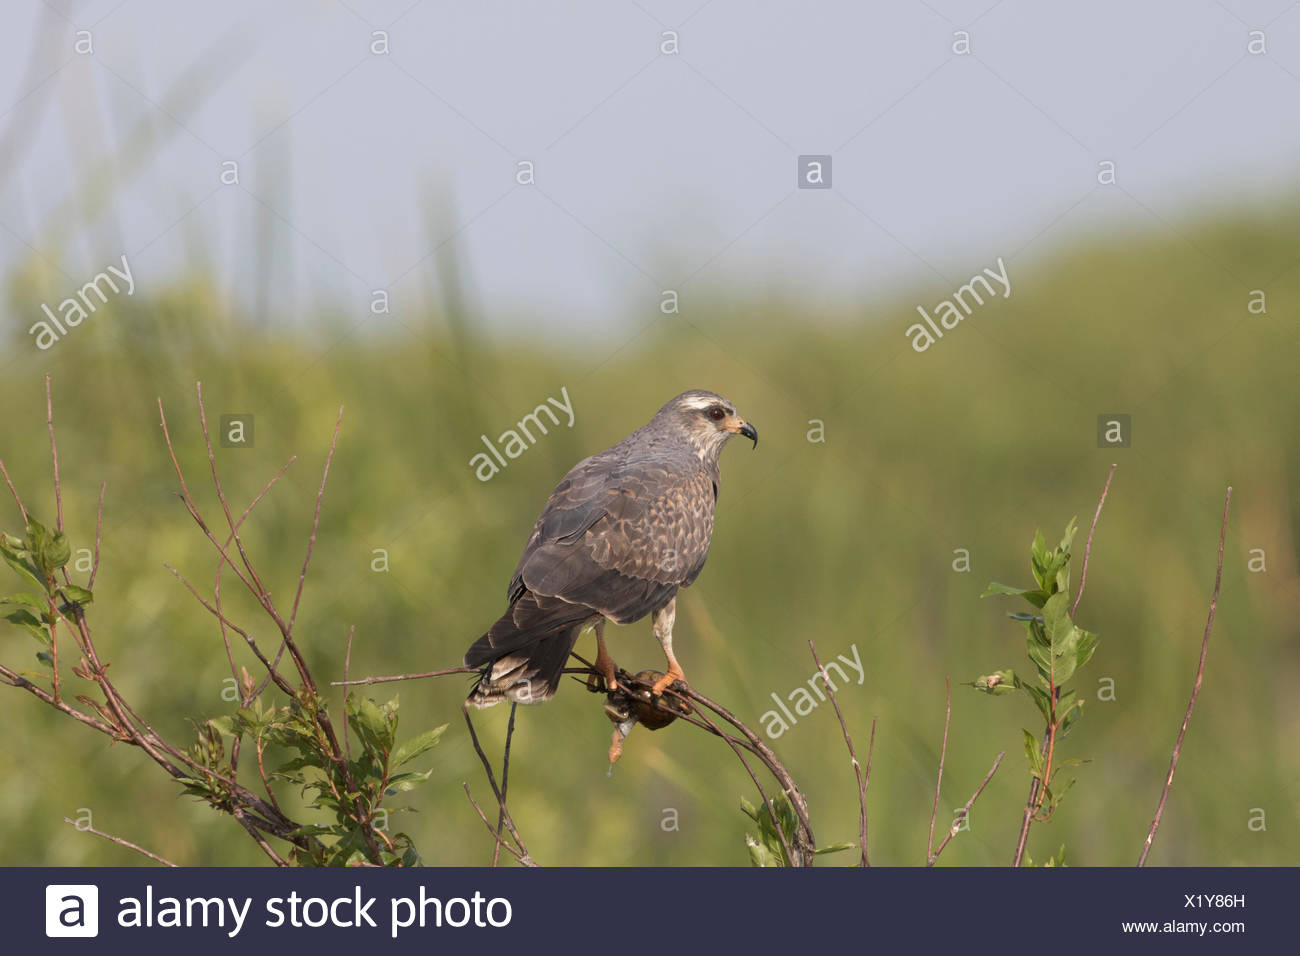 Snail kite (Rostrhammus sociabilus) clutching an Apple Snail, found in US only in southern Florida where it lives almost exclusively on a diet of Apple Snails. Shore of Lake Kissimmee, Florida, USA. - Stock Image